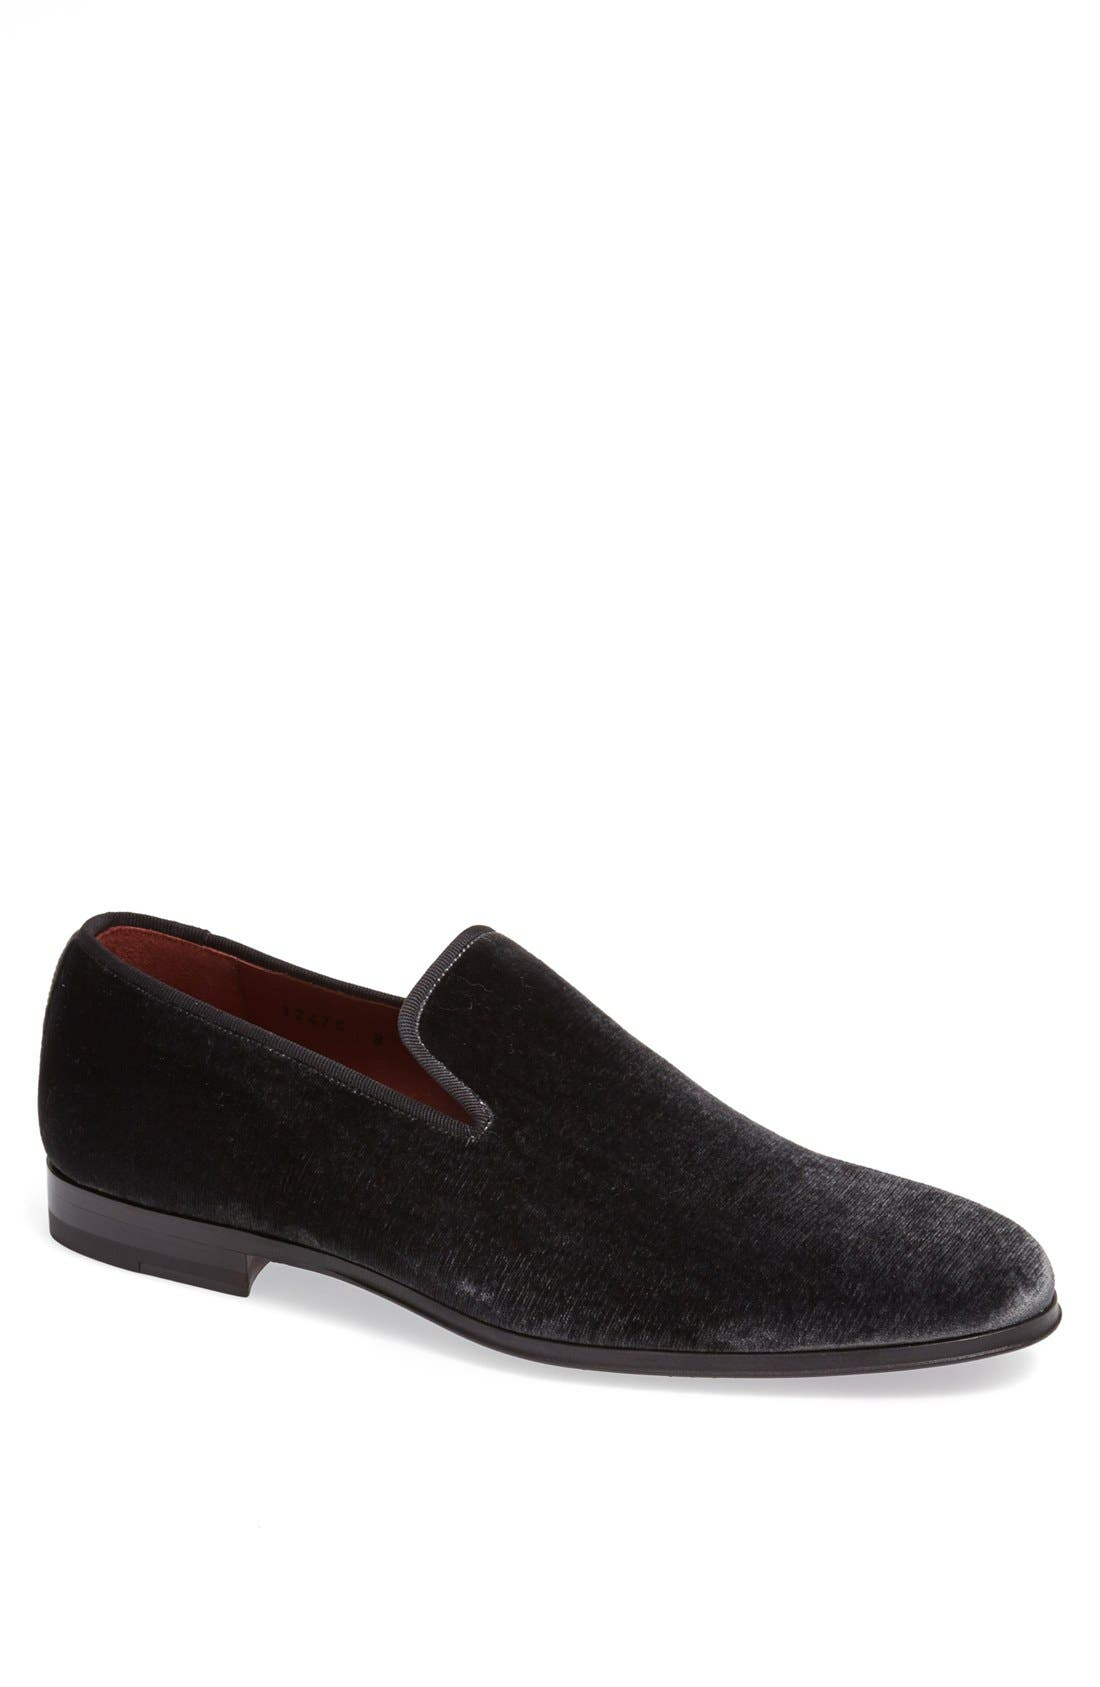 Alternate Image 1 Selected - Magnanni 'Dorio' Velvet Venetian Loafer